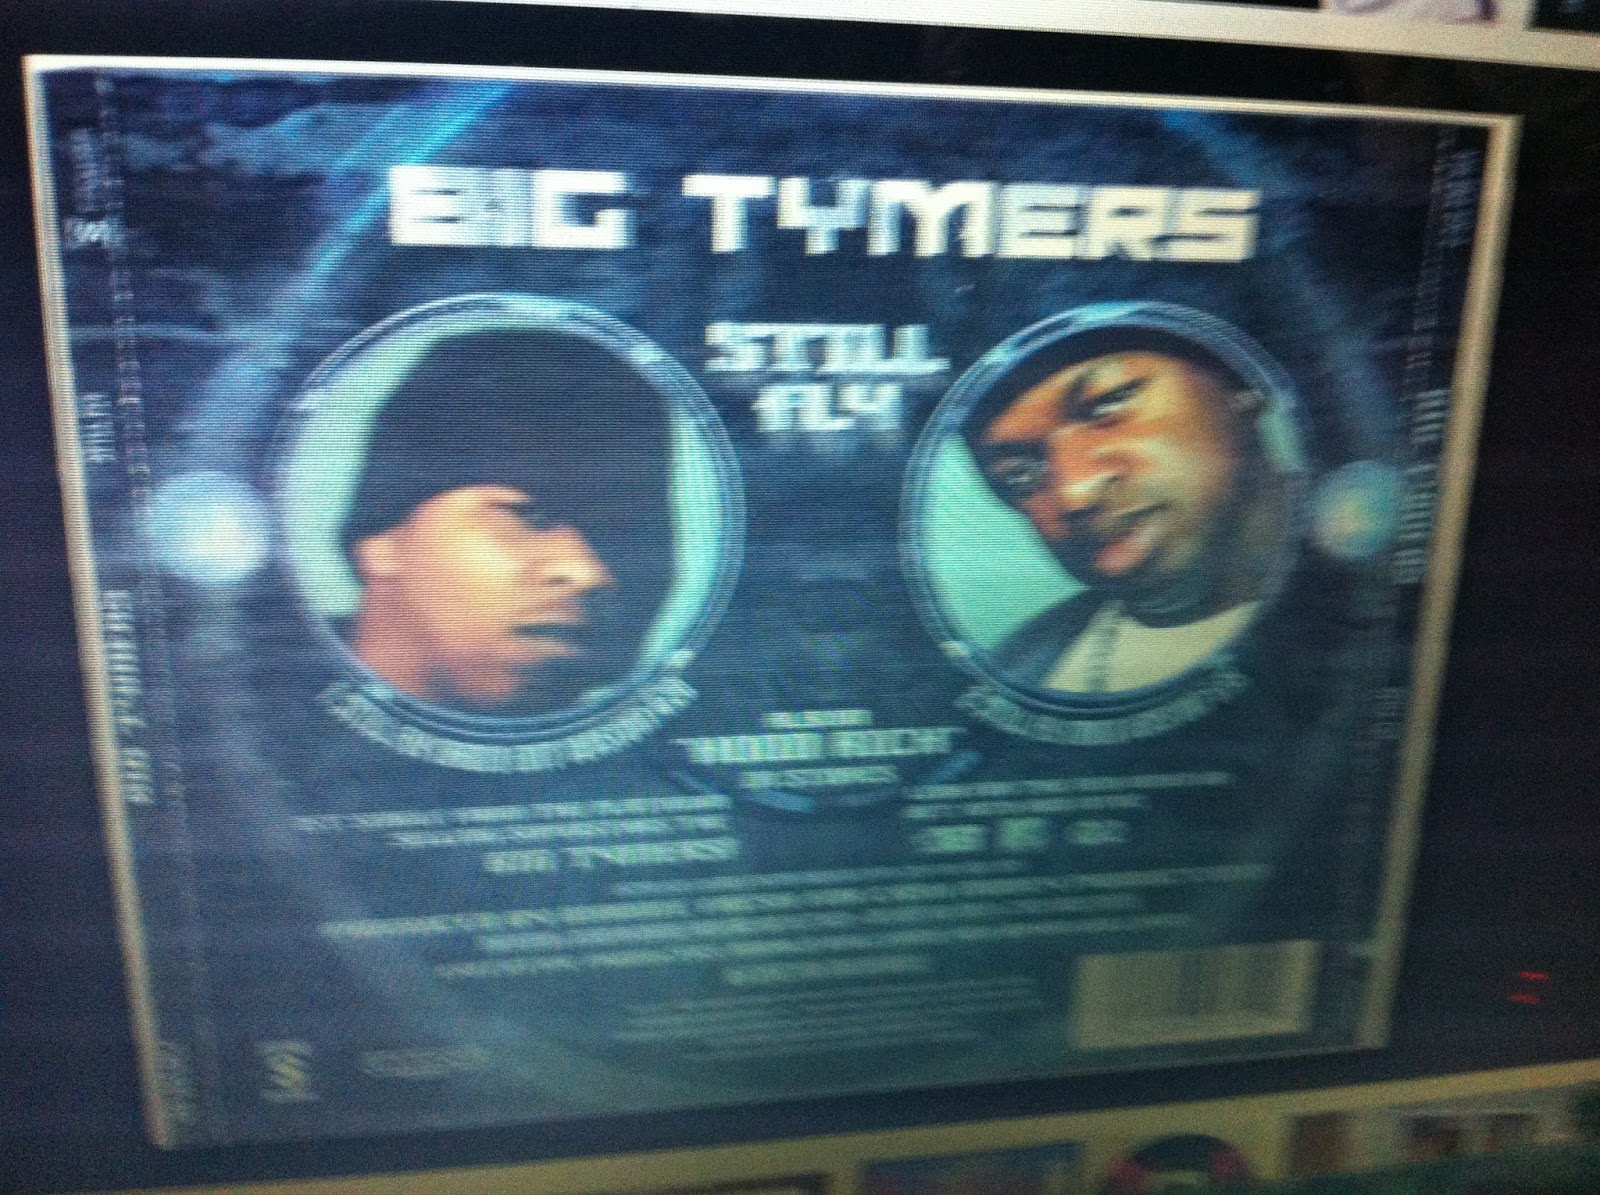 How You Luv That Vol. 2 - Big Tymers